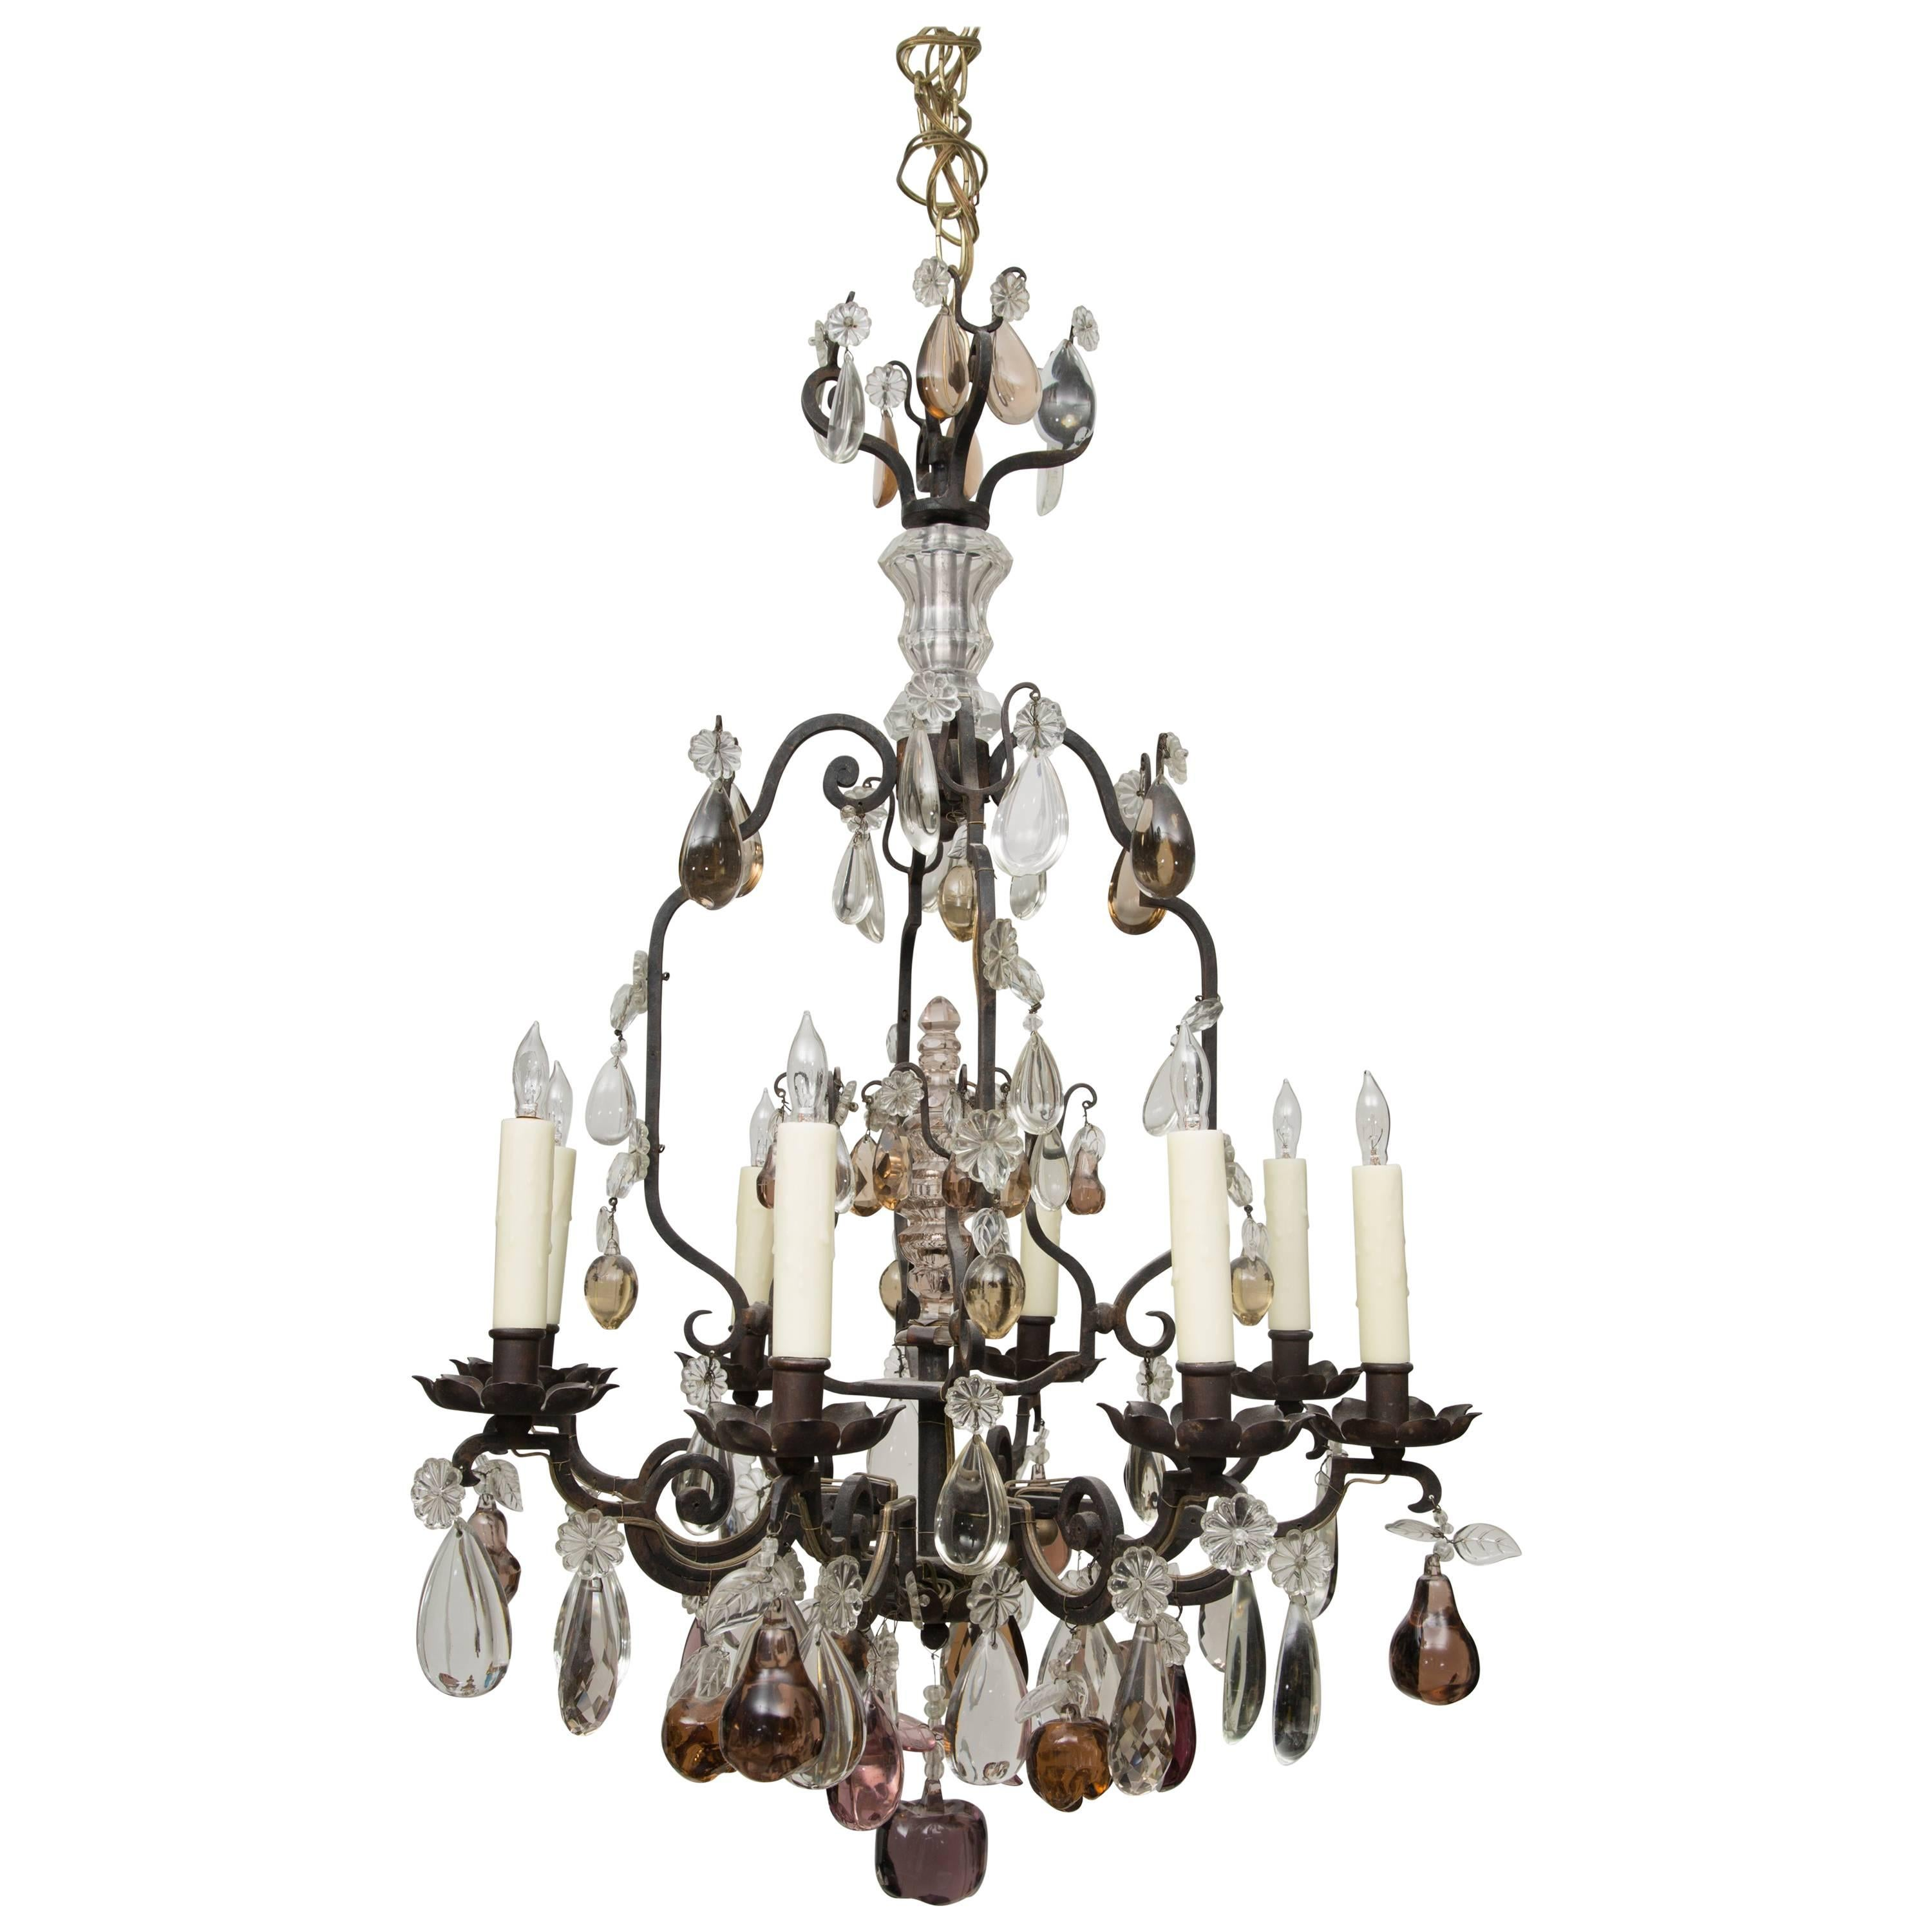 French Eight-Light Chandelier with Multi-Form Pendants